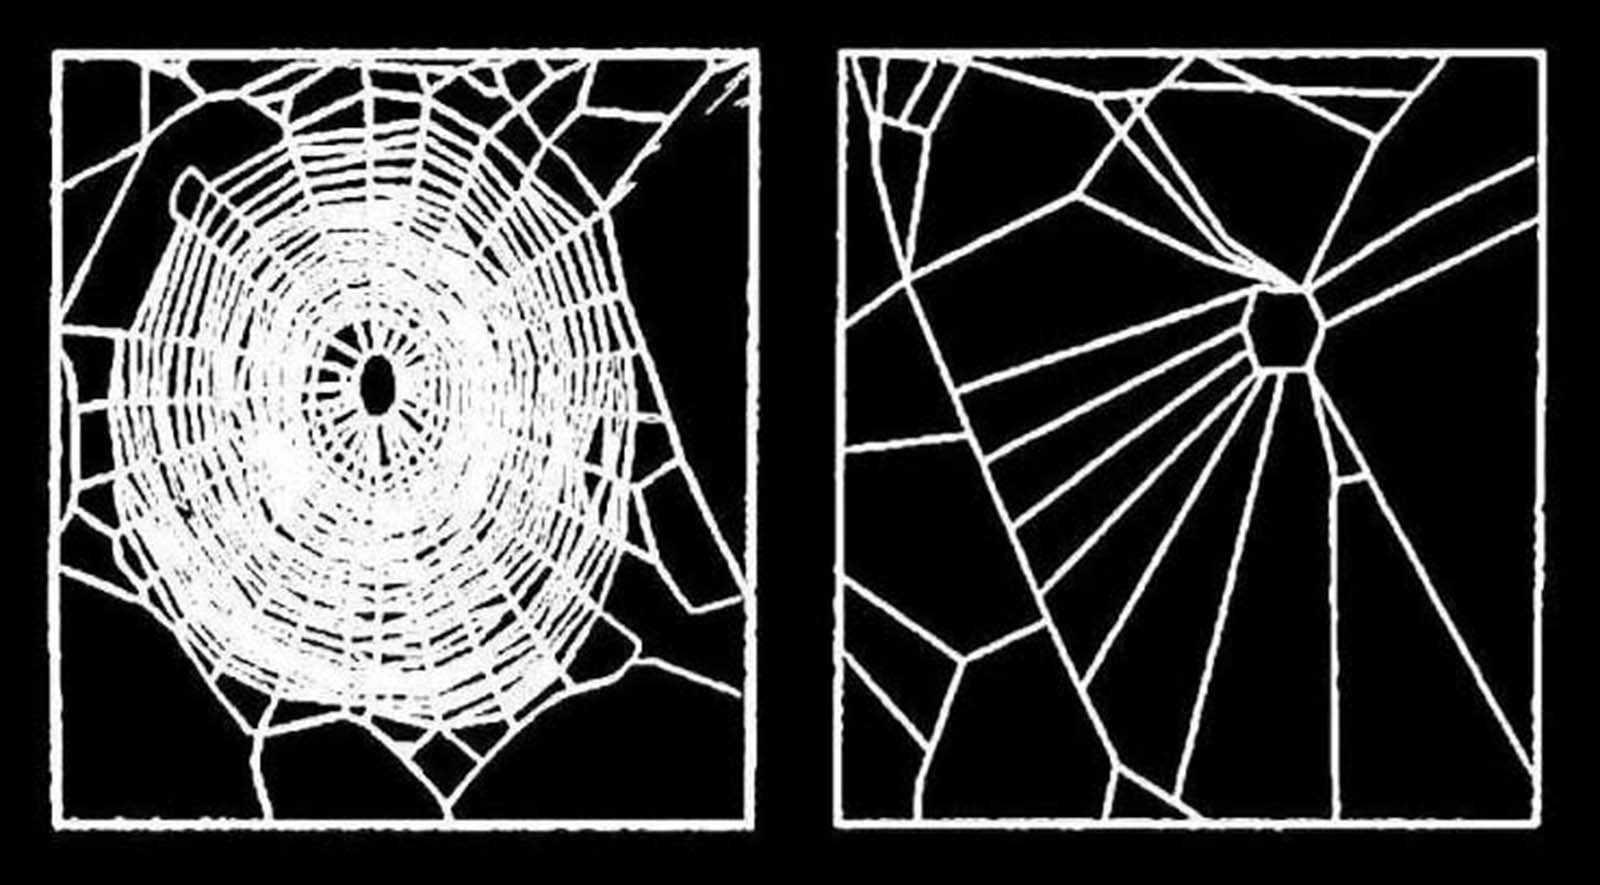 nasa spiders drugs experiment